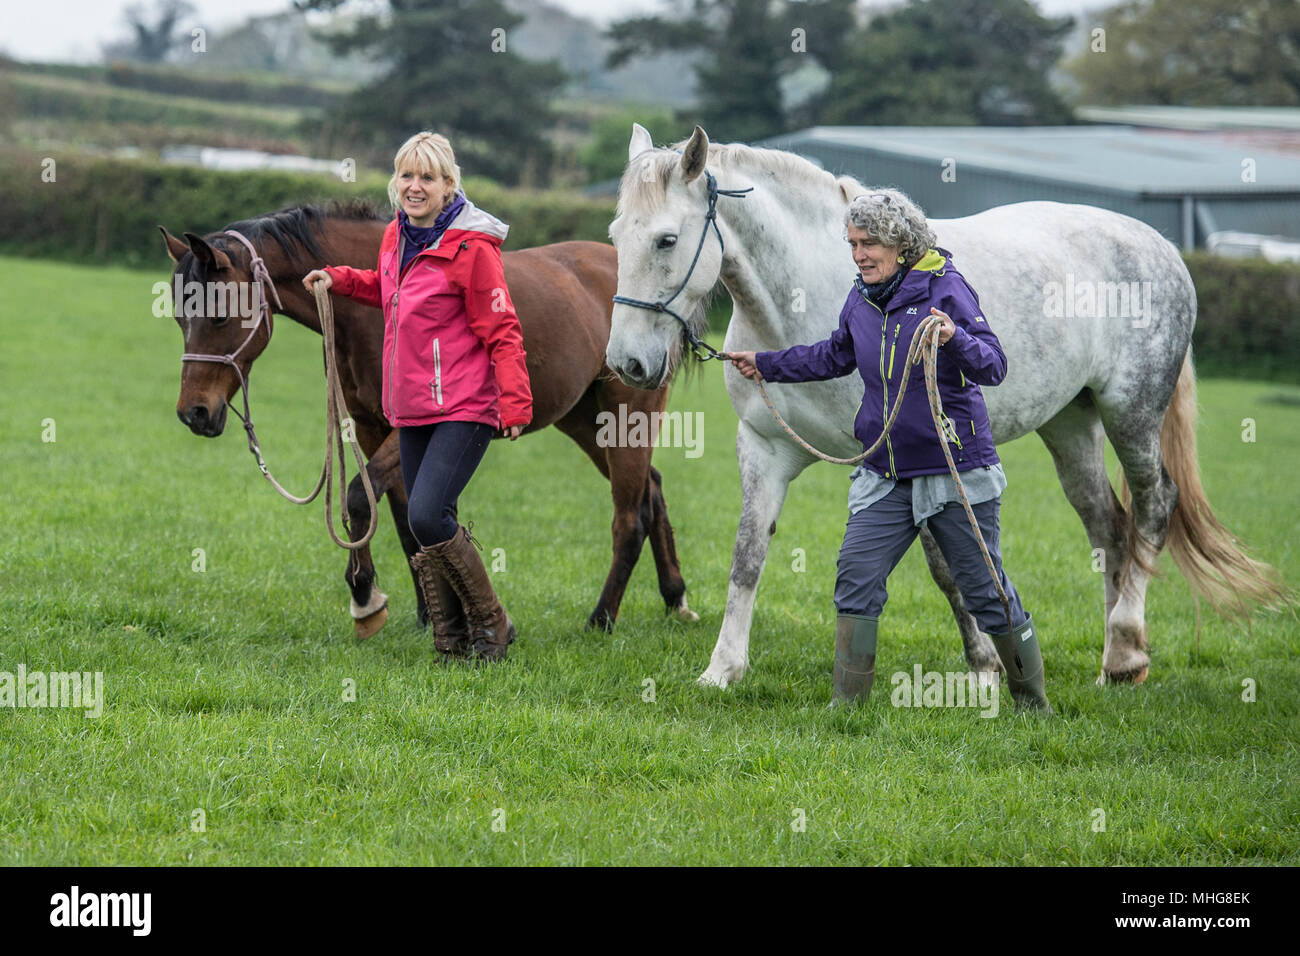 2 owners and their horses - Stock Image